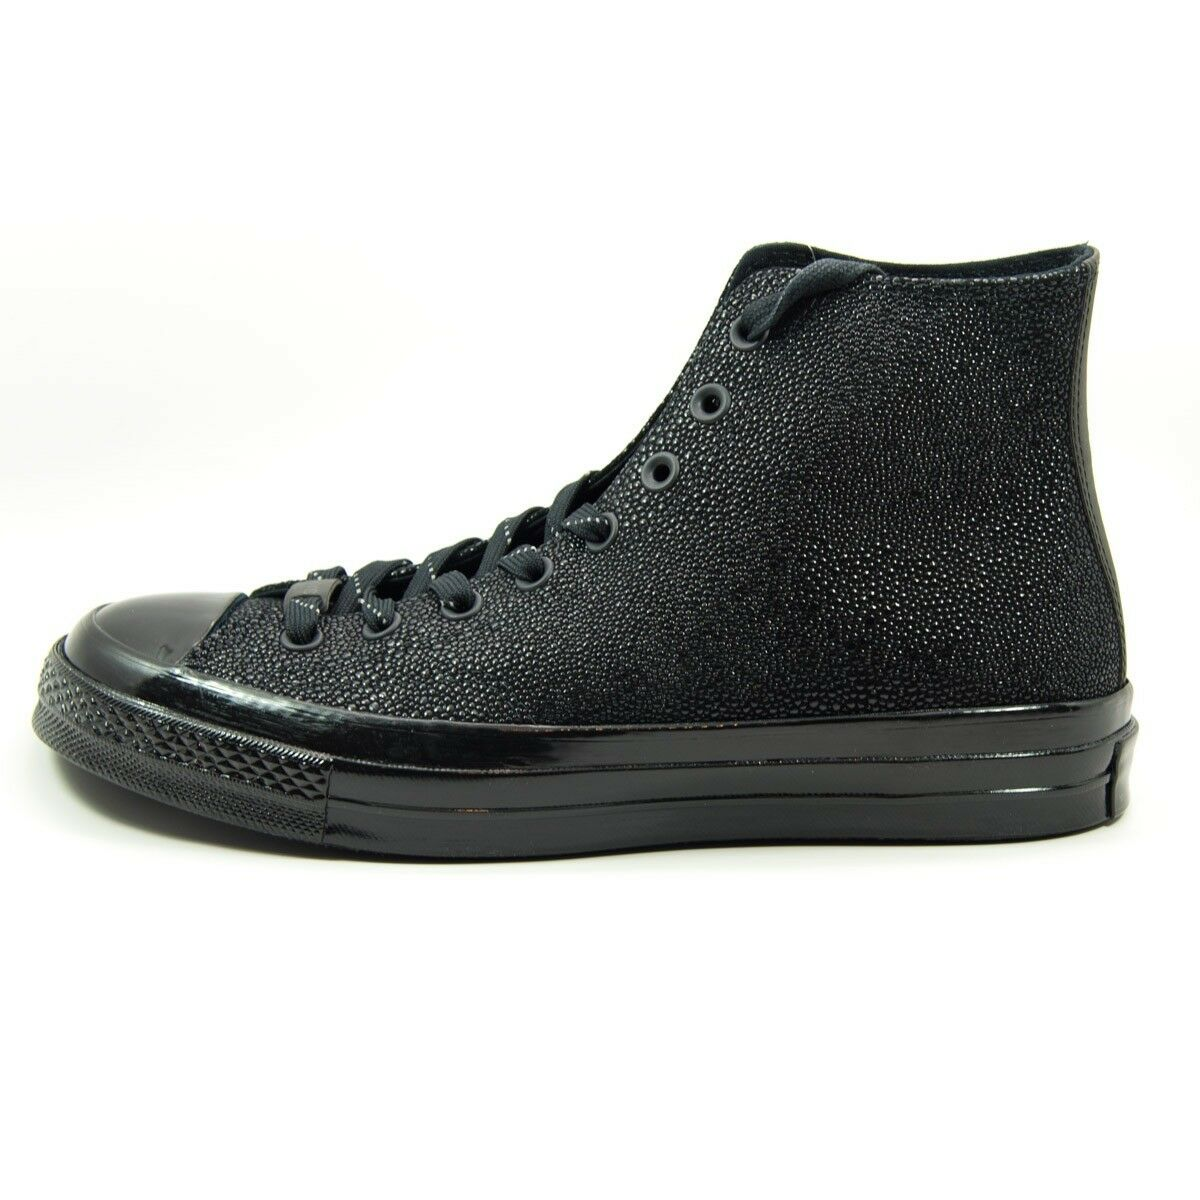 150 Uomo CONVERSE CHUCK TAYLOR CTAS 70 LIMITED HIGH SIZE 10 NEW 155011C